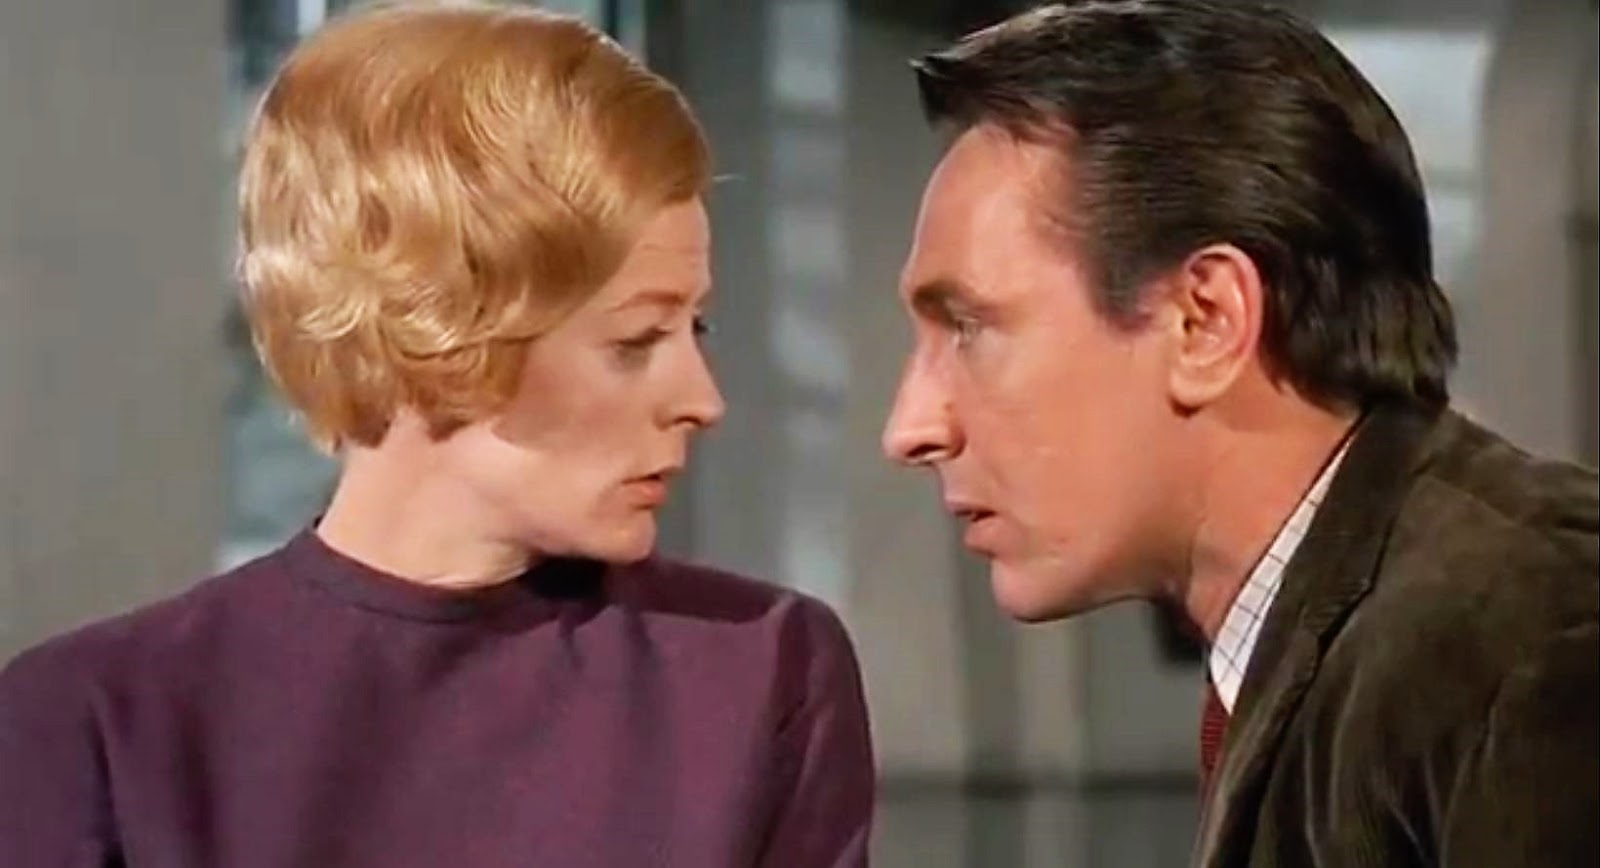 narrative structure prime miss jean brodie This theatrical set 'em up and knock 'em down structure  narrative conventions of theatre jean brodie does  the prime of miss jean brodie.